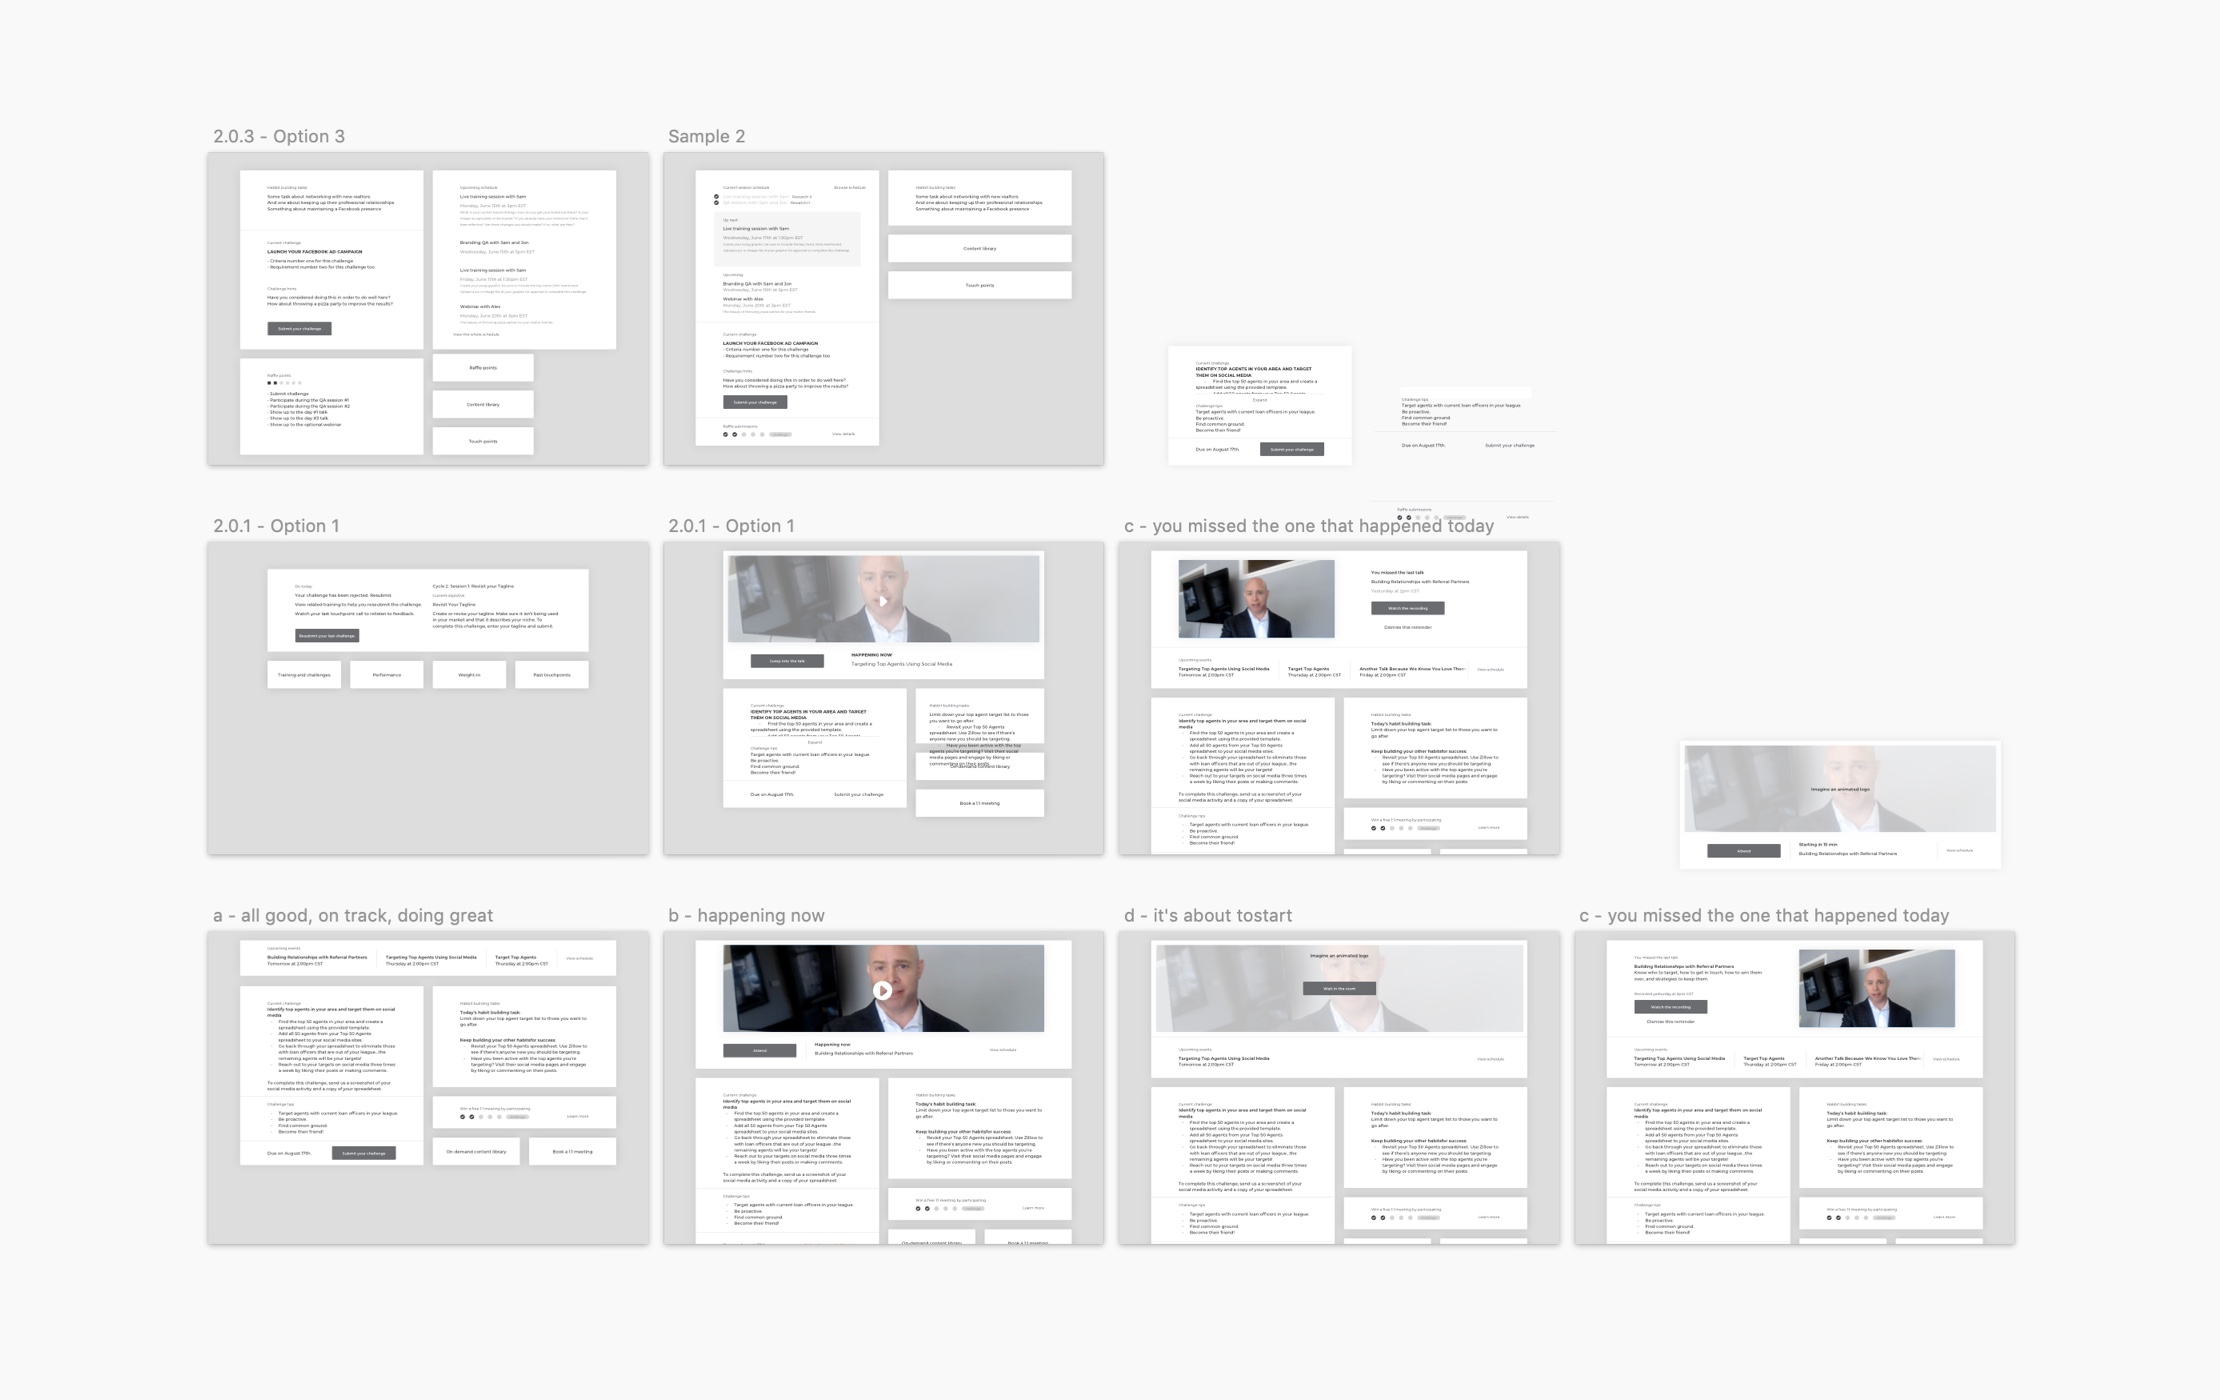 TOP: Web design case study: a peek at the wireframes